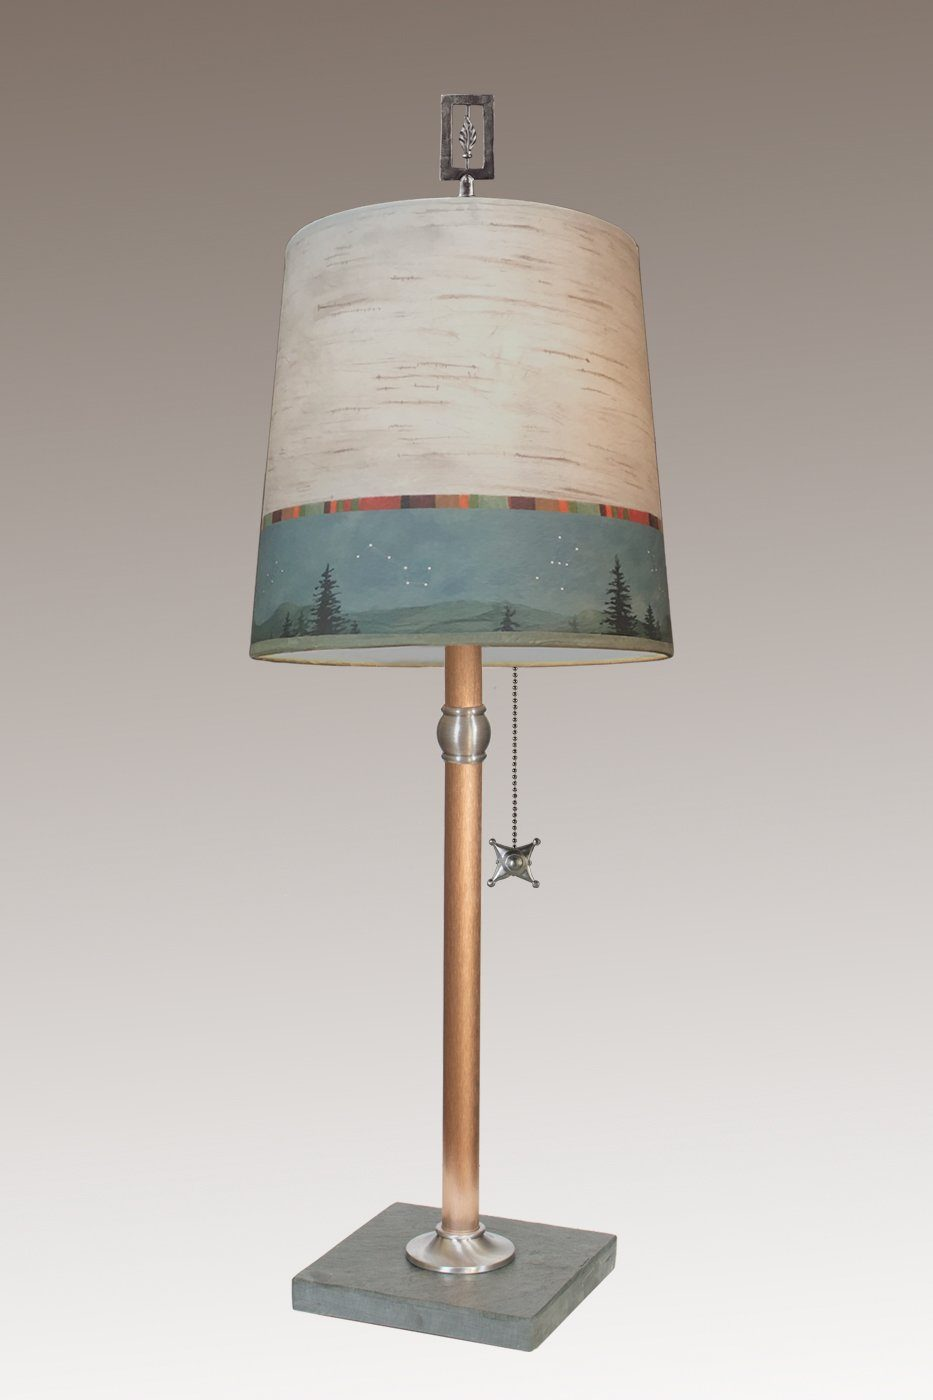 Copper Table Lamp with Medium Drum Shade in Birch Midnight